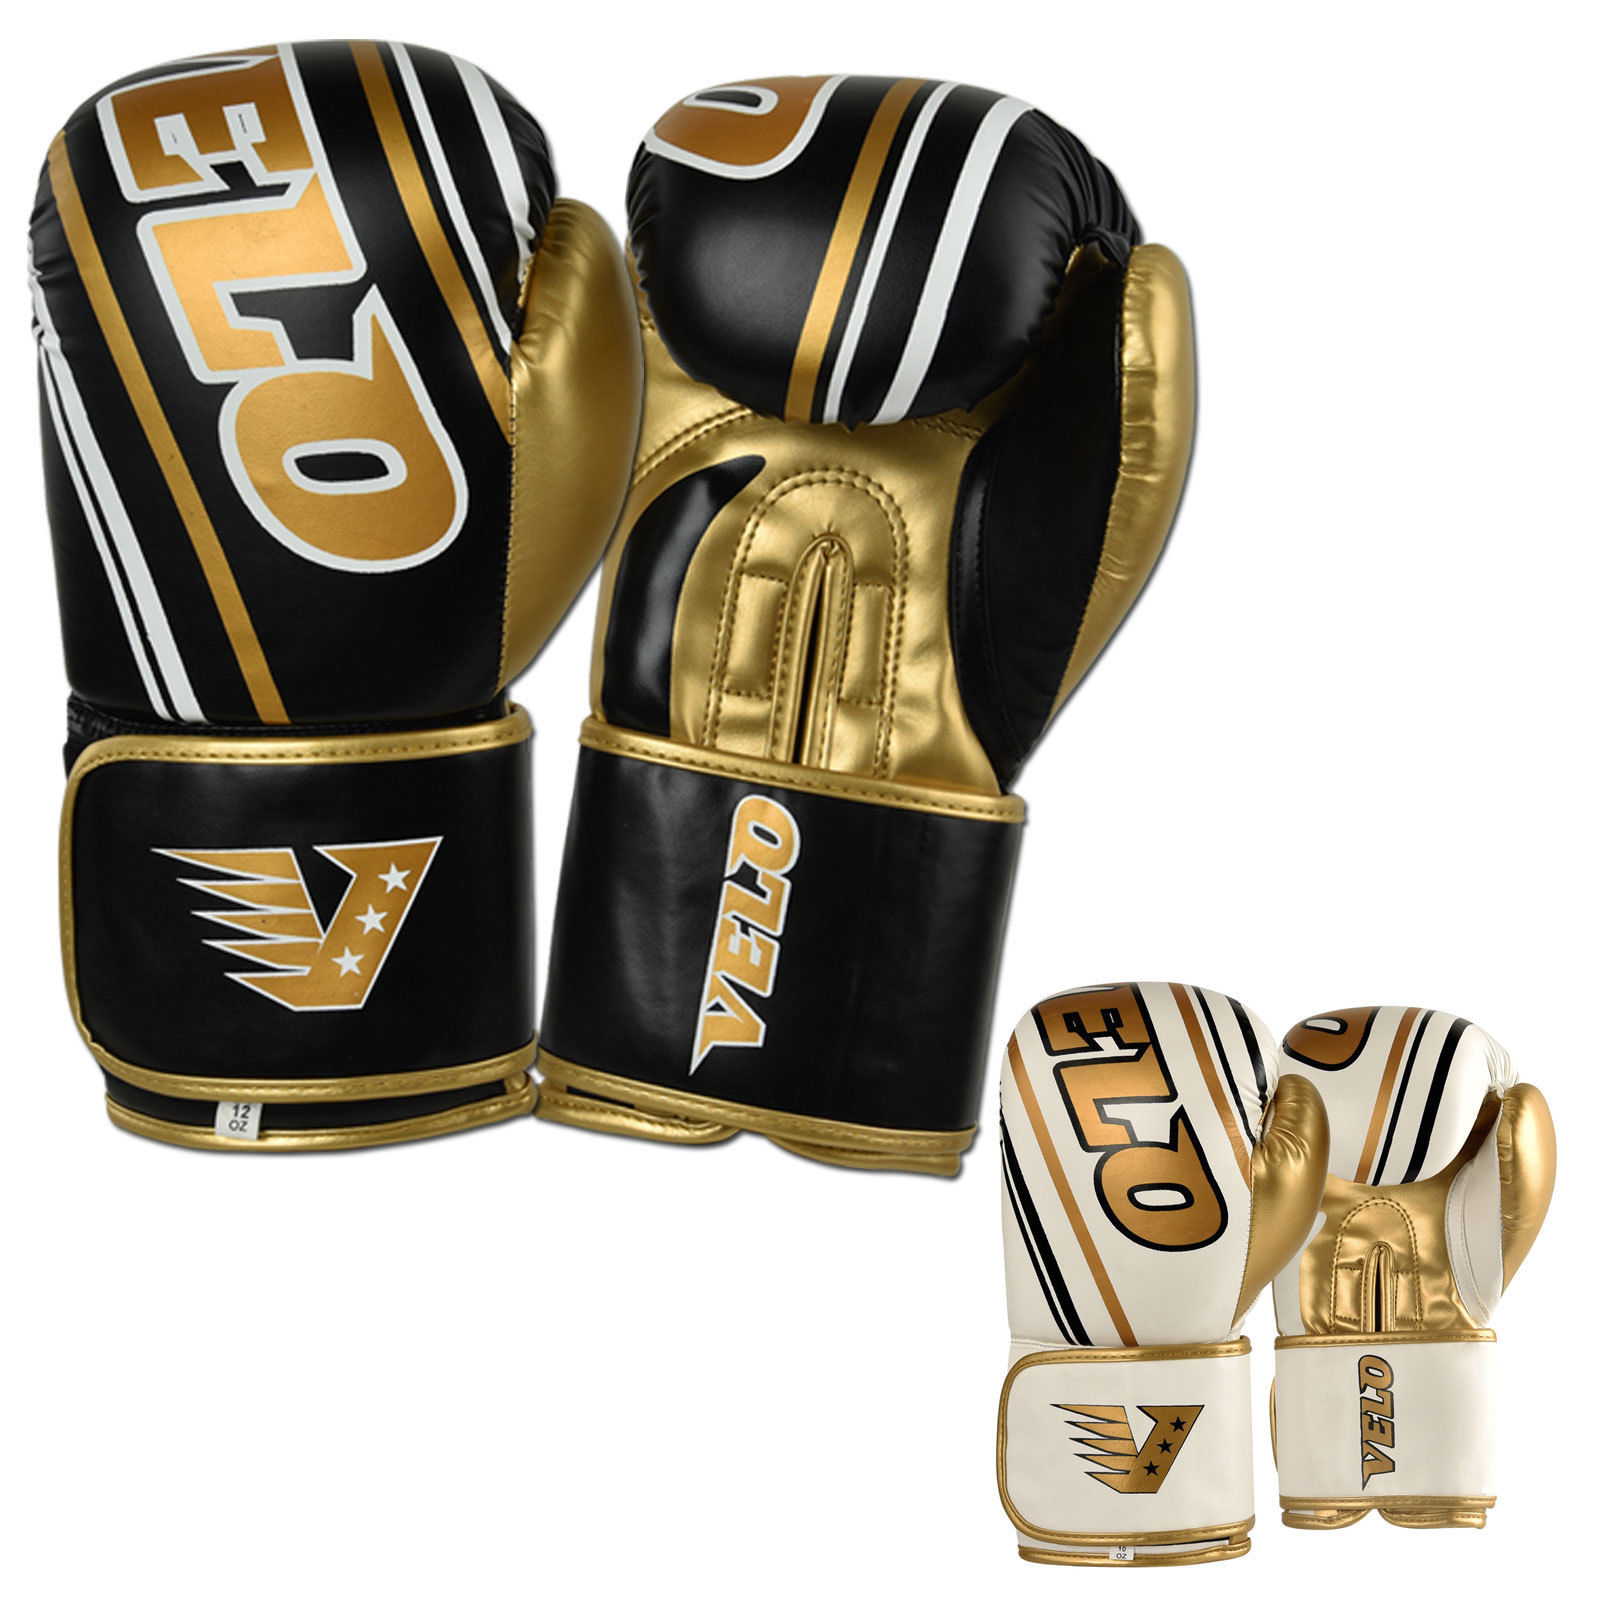 VELO Boxing Gloves - Golden Black